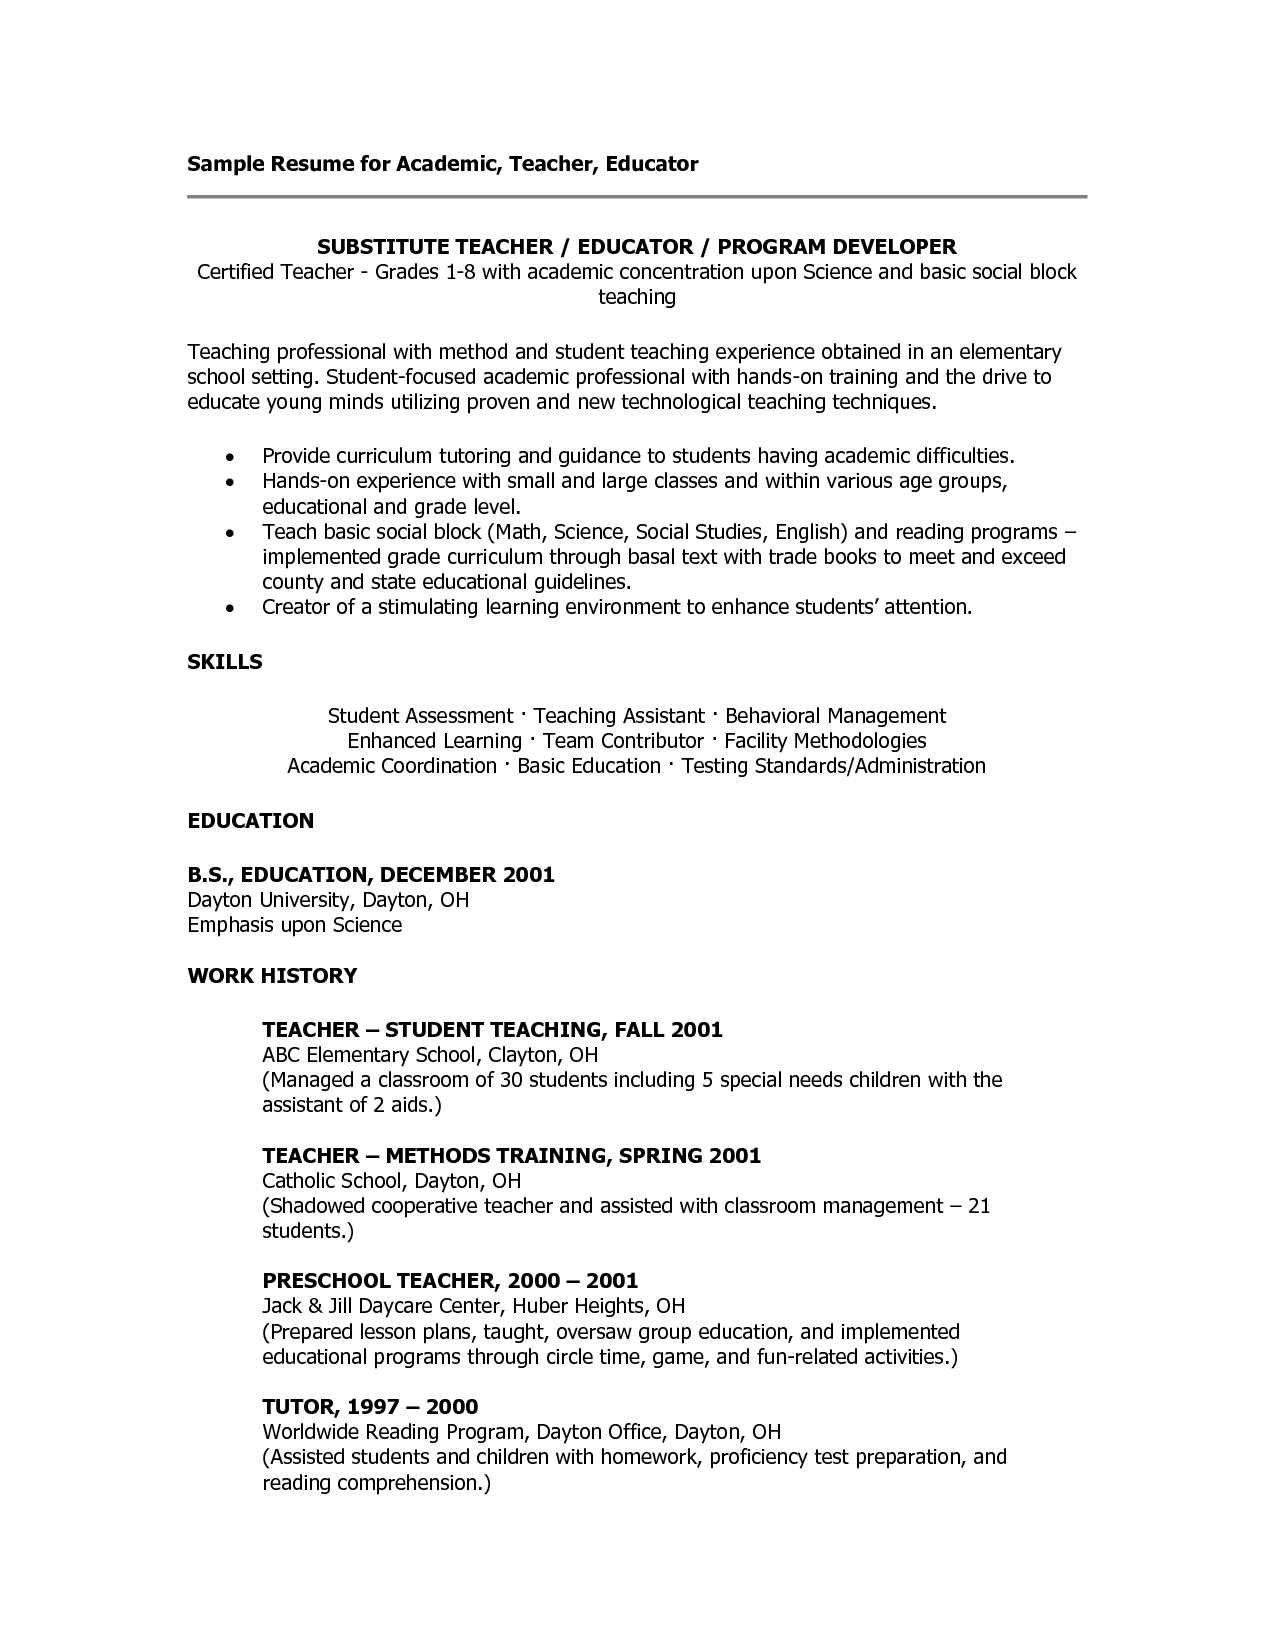 Student Teacher Resume Sample Teacher Resumes  Substitute Teacher Resume  Fcs